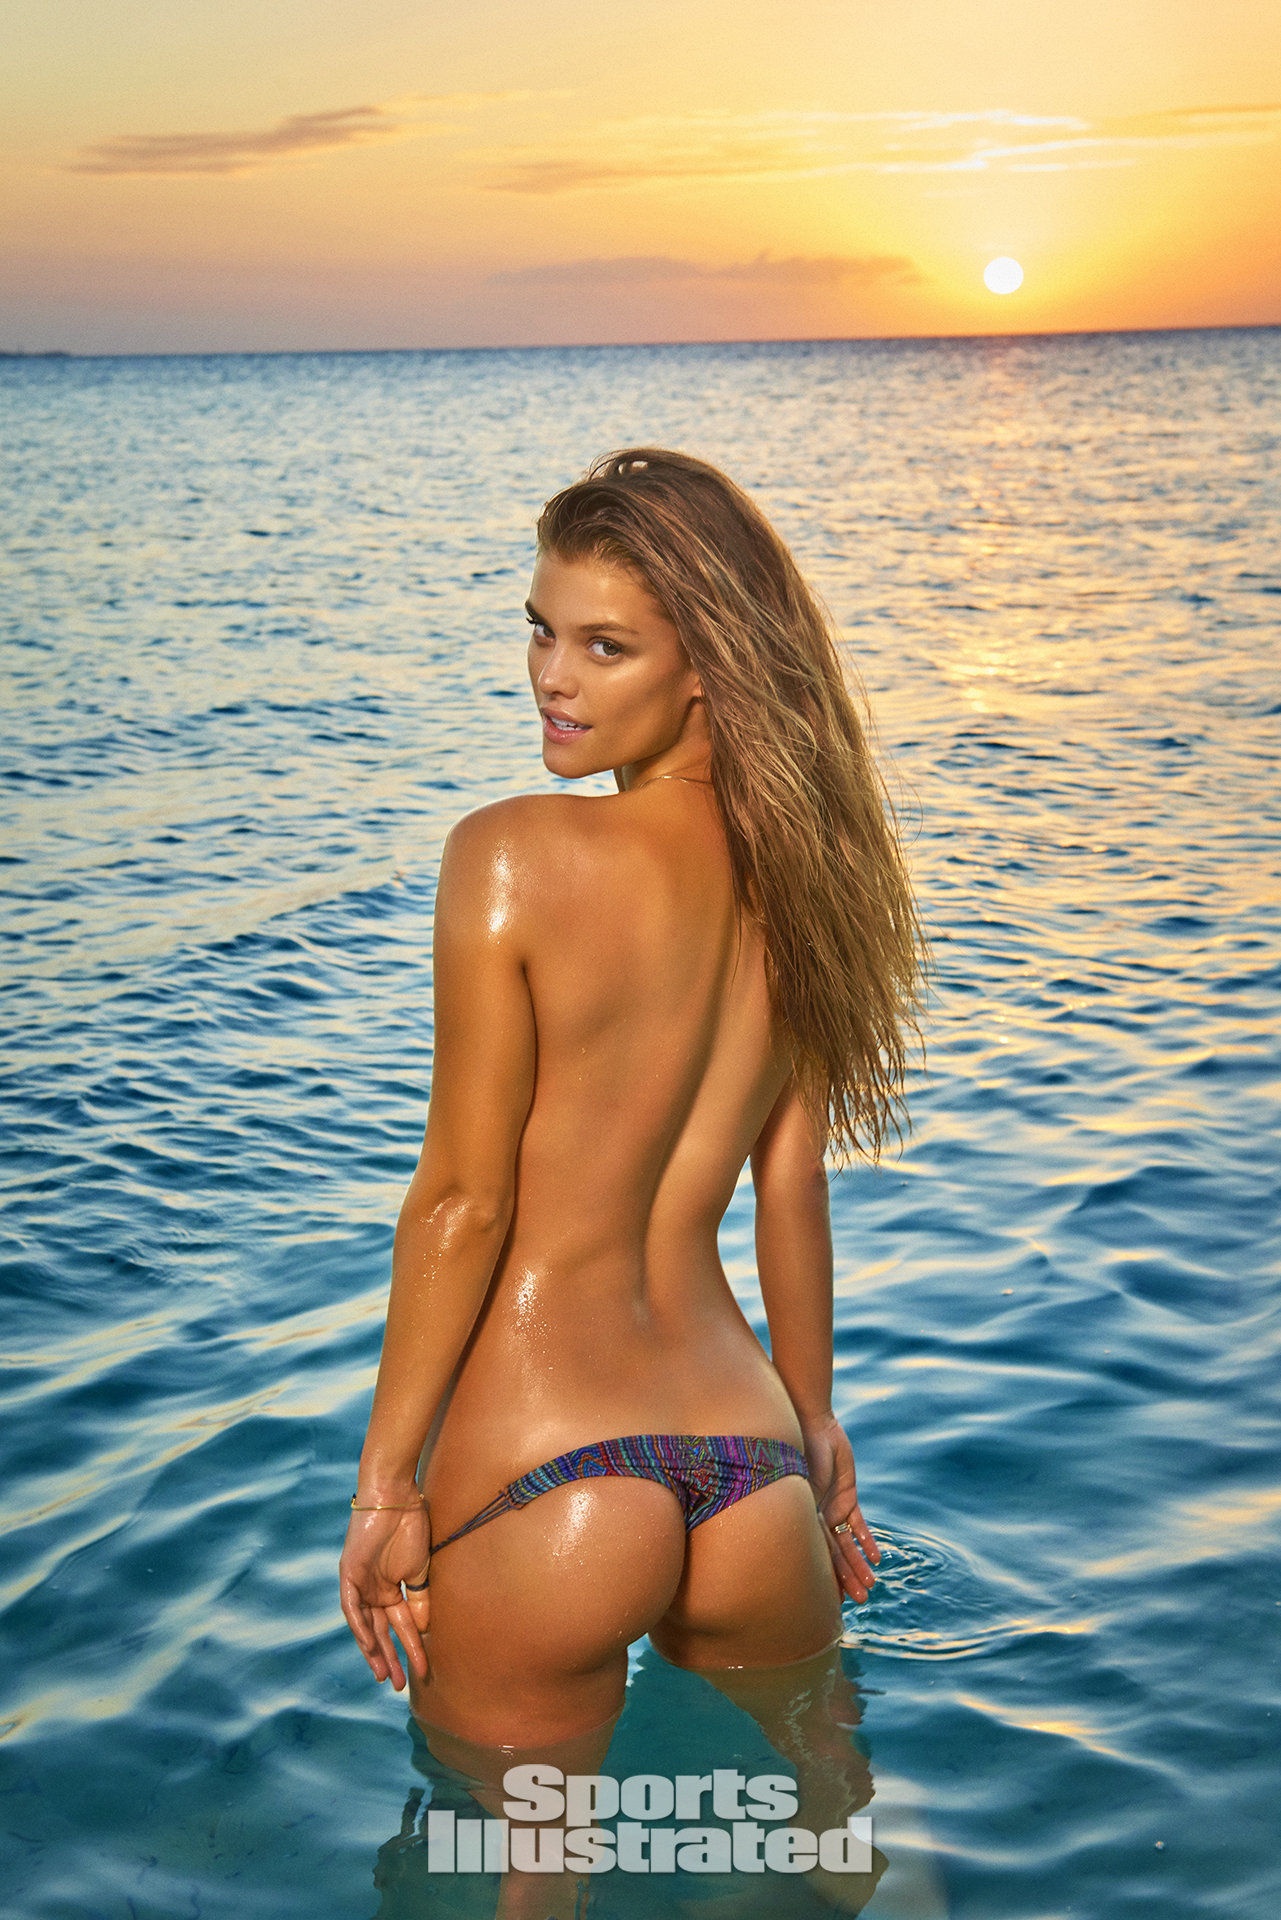 Nina Agdal was photographed by Ruven Afanador in Zanzibar.